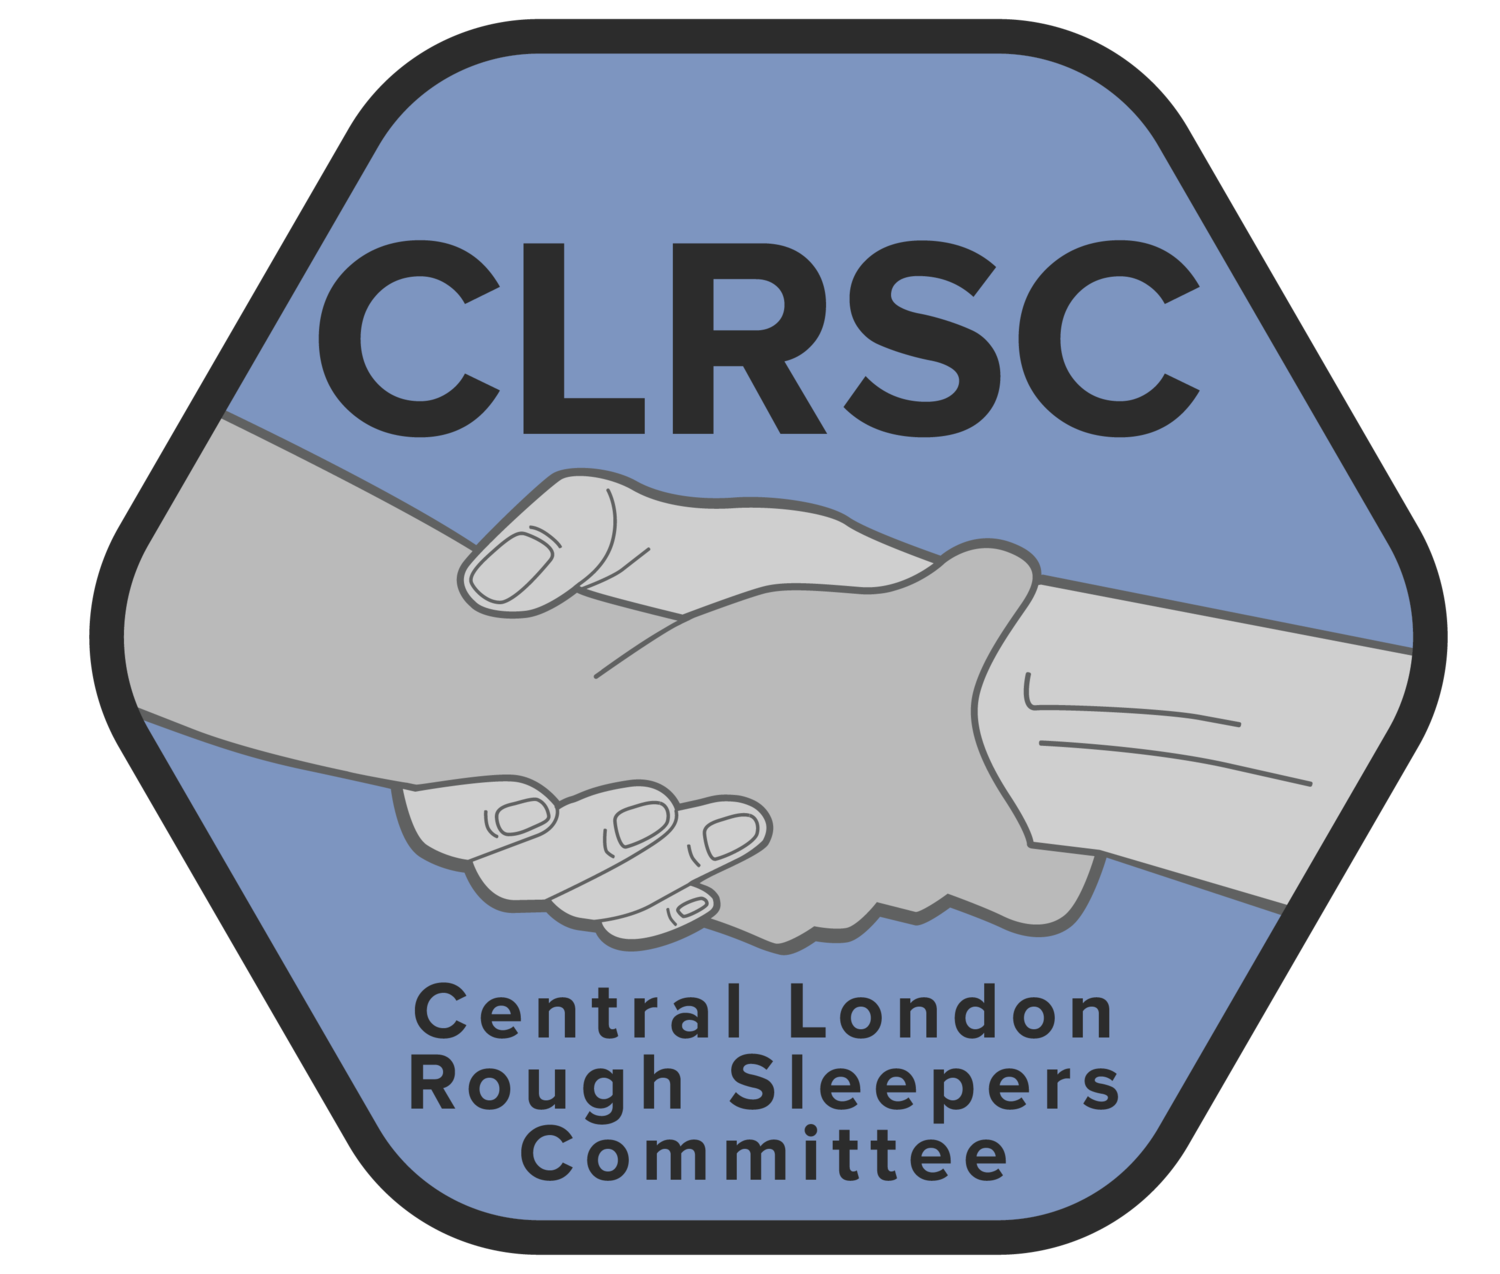 Central London Rough Sleepers Committee